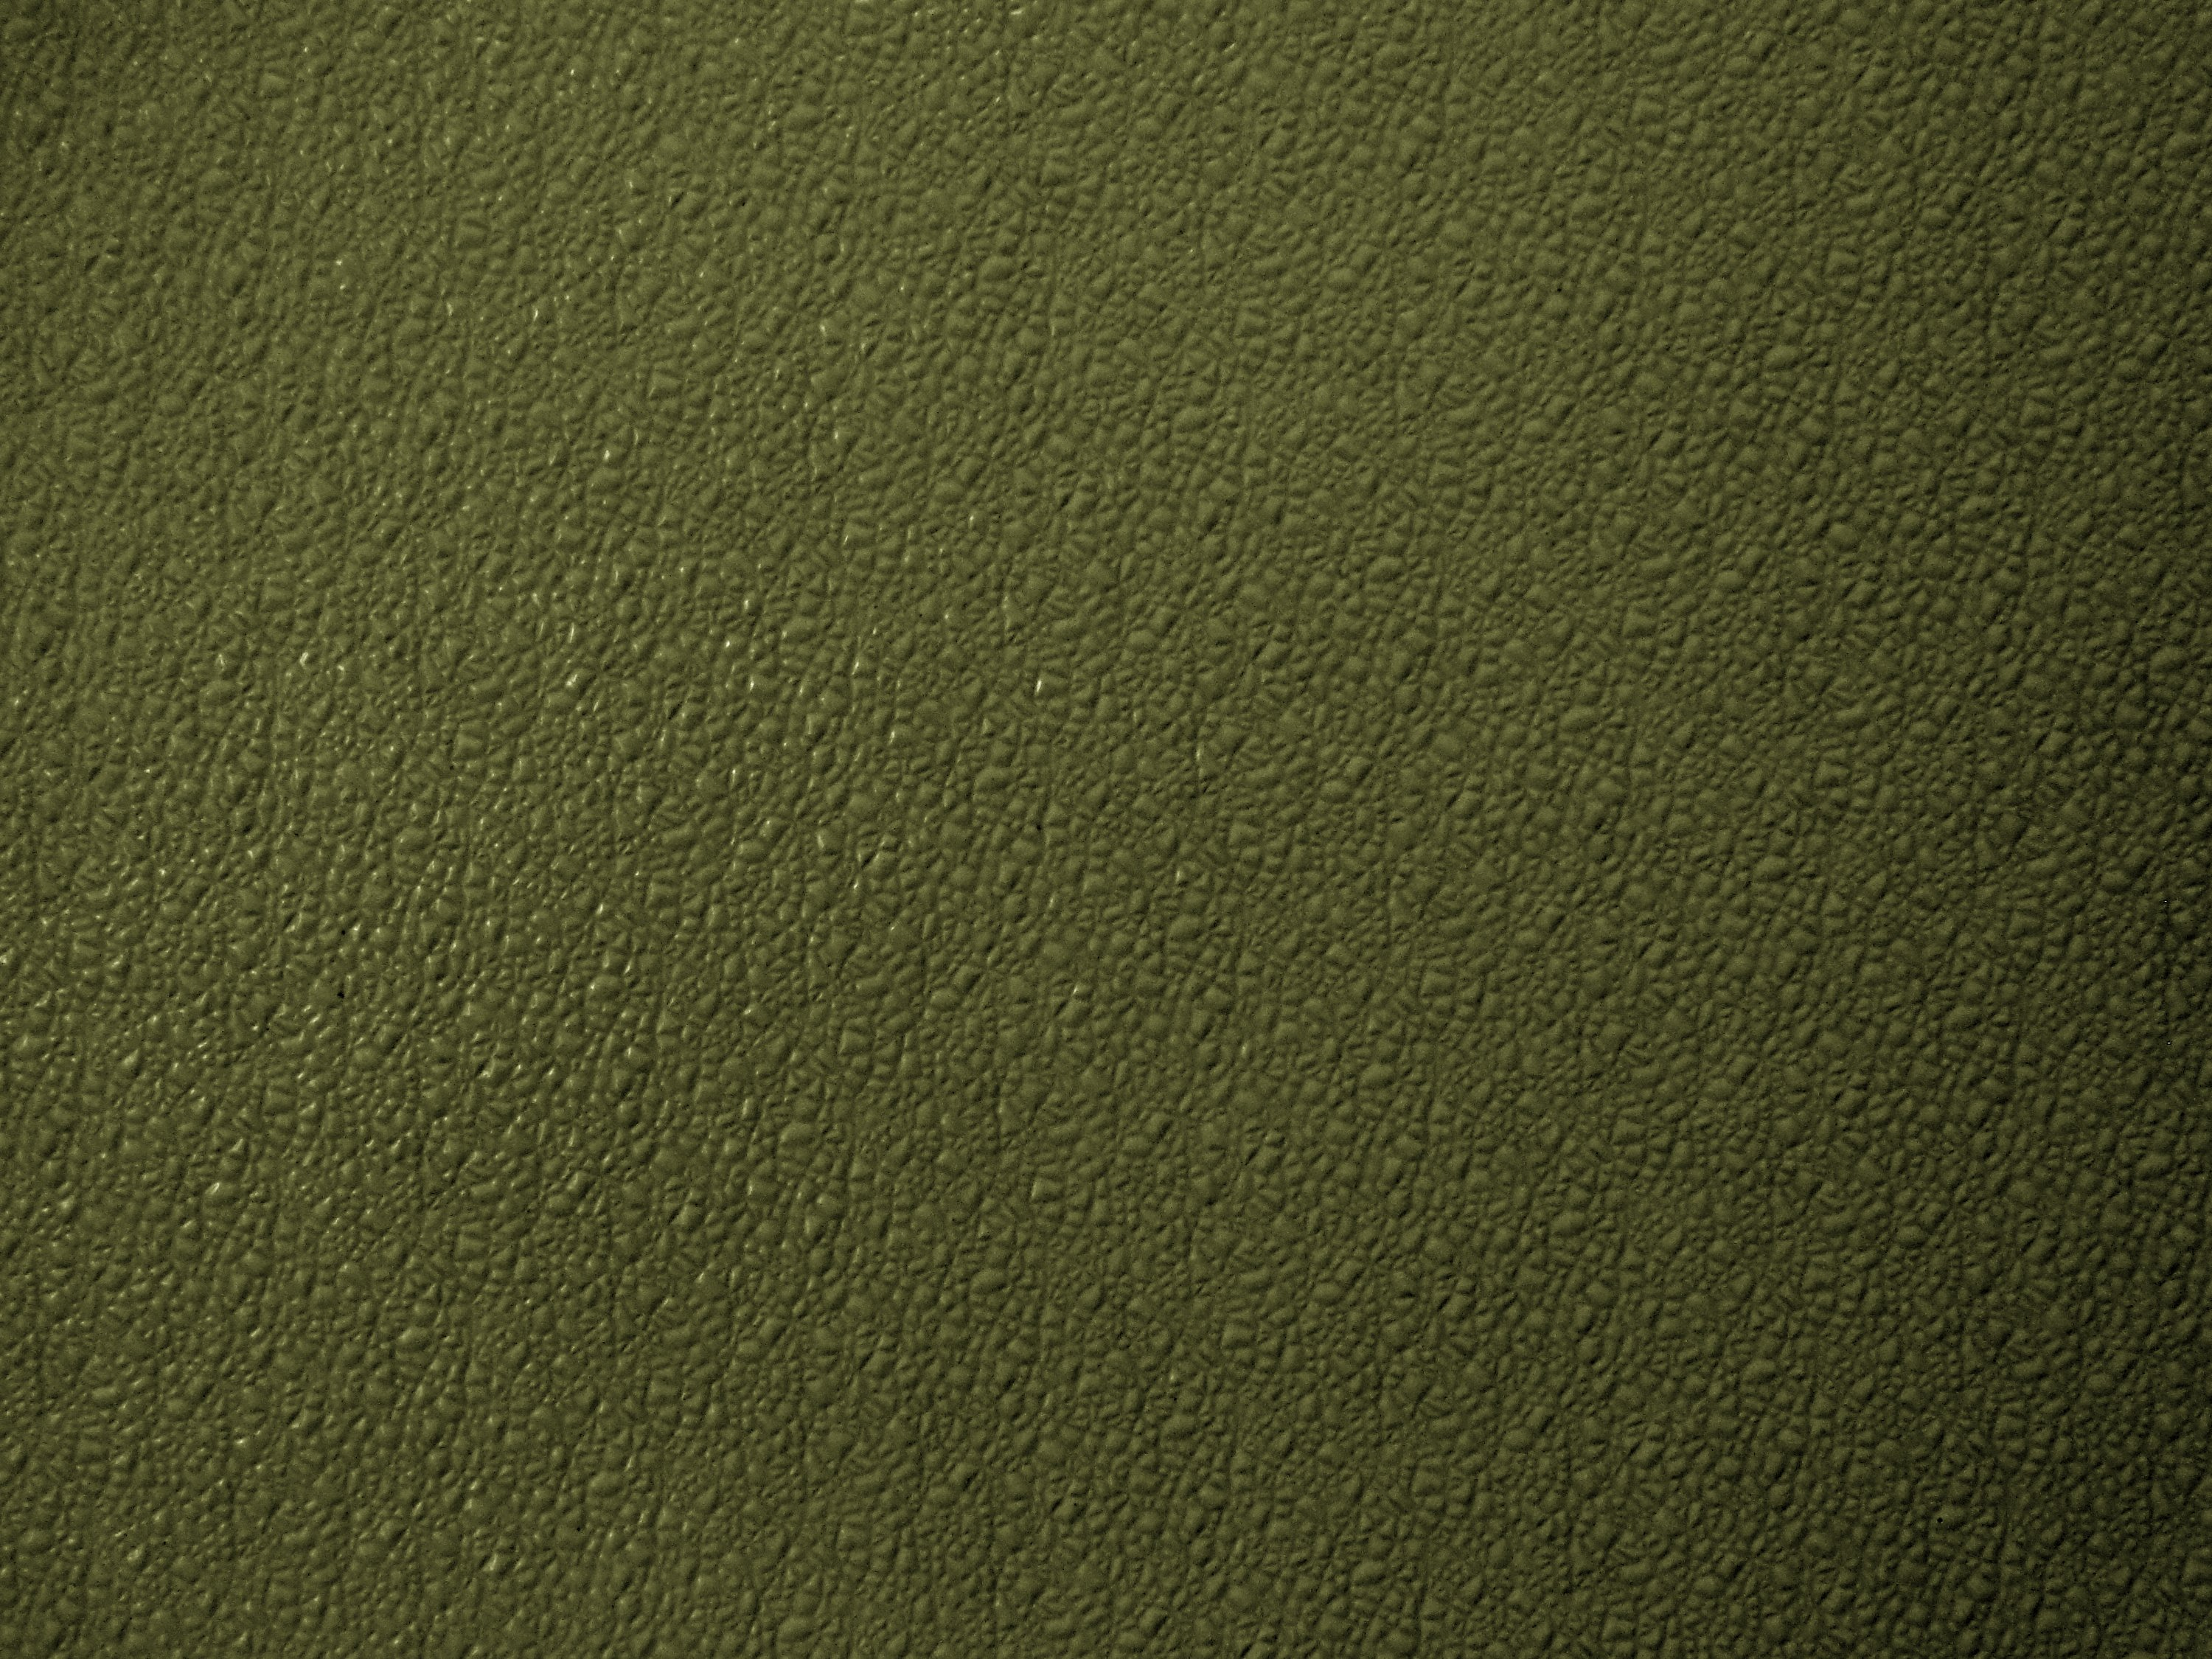 Black And Gold Textured Wallpaper Bumpy Olive Green Plastic Texture Picture Free